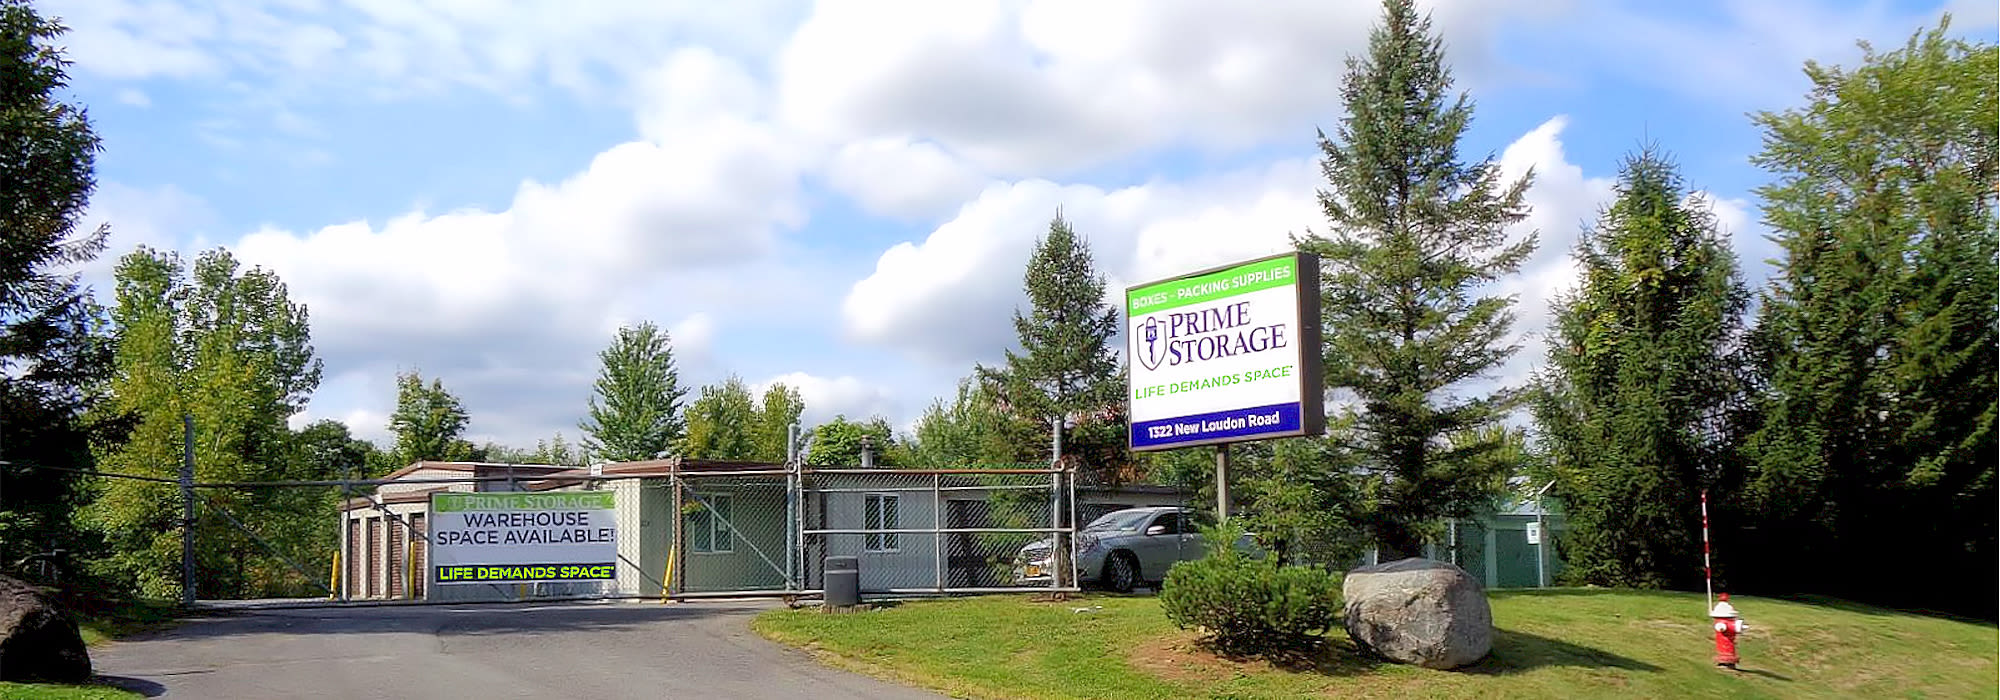 Prime Storage in Cohoes, NY